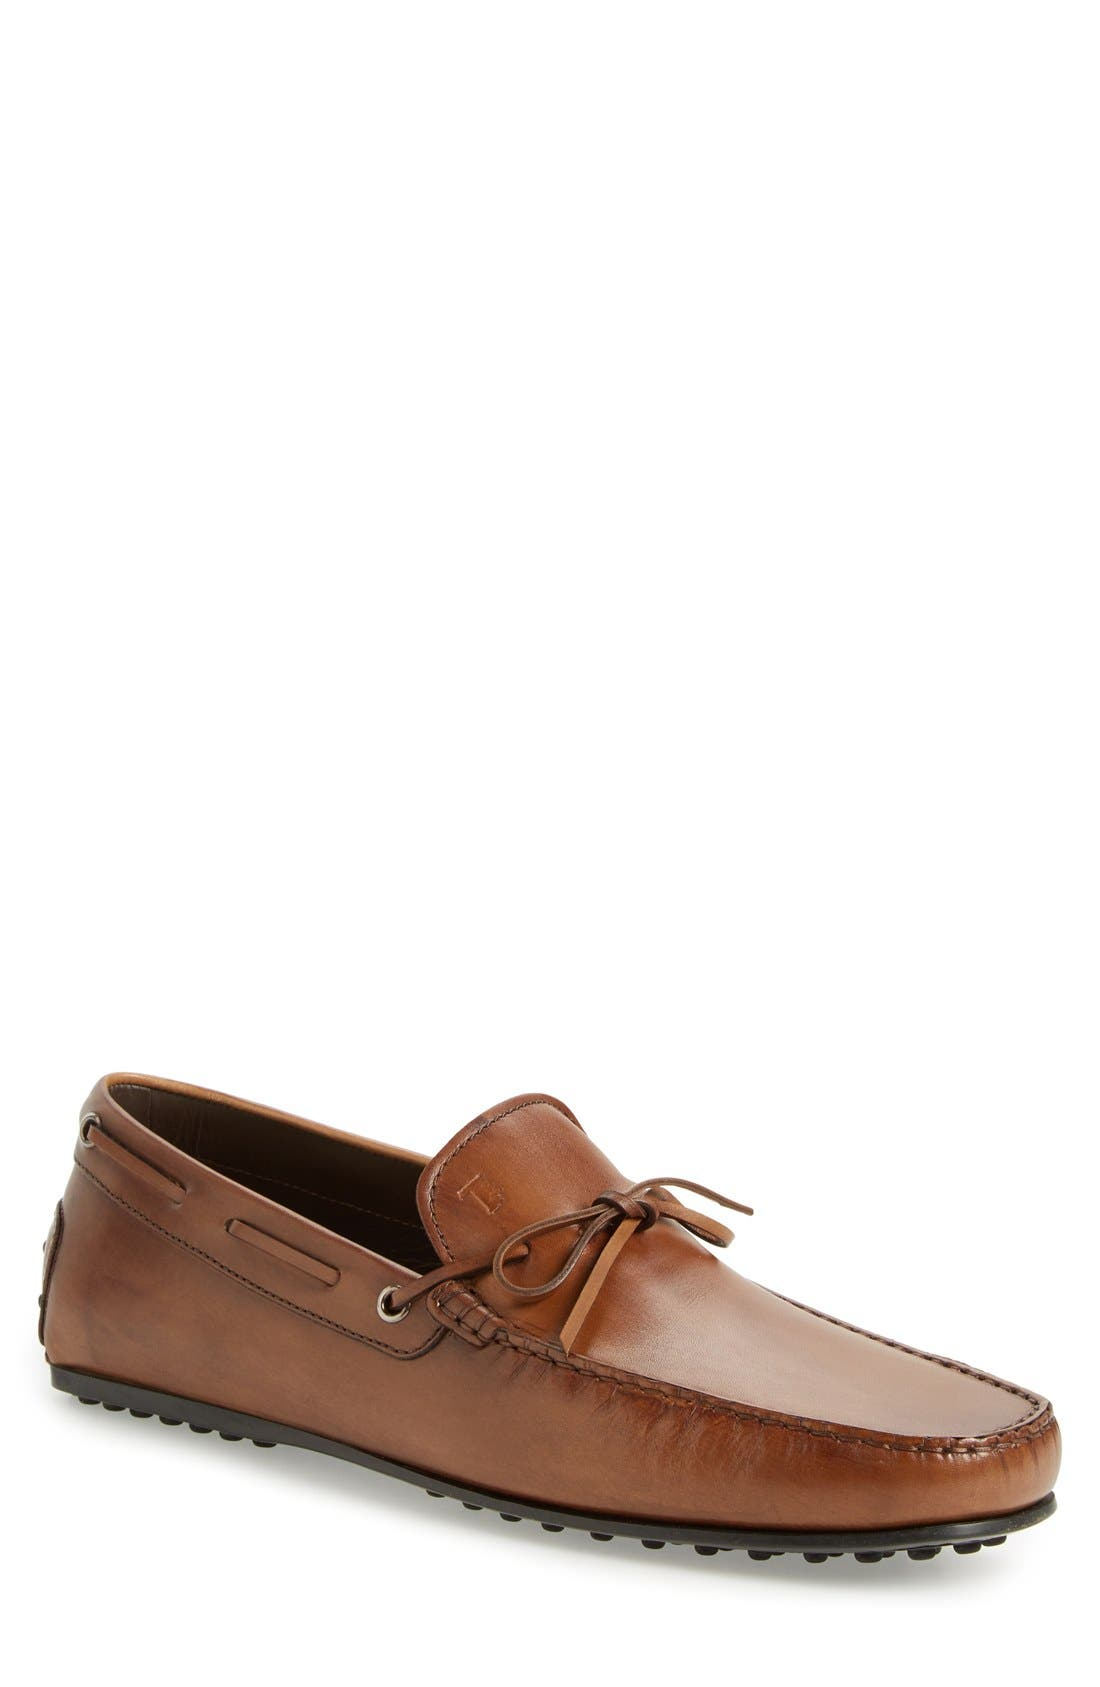 TODS City Gommini Tie Front Driving Moccasin